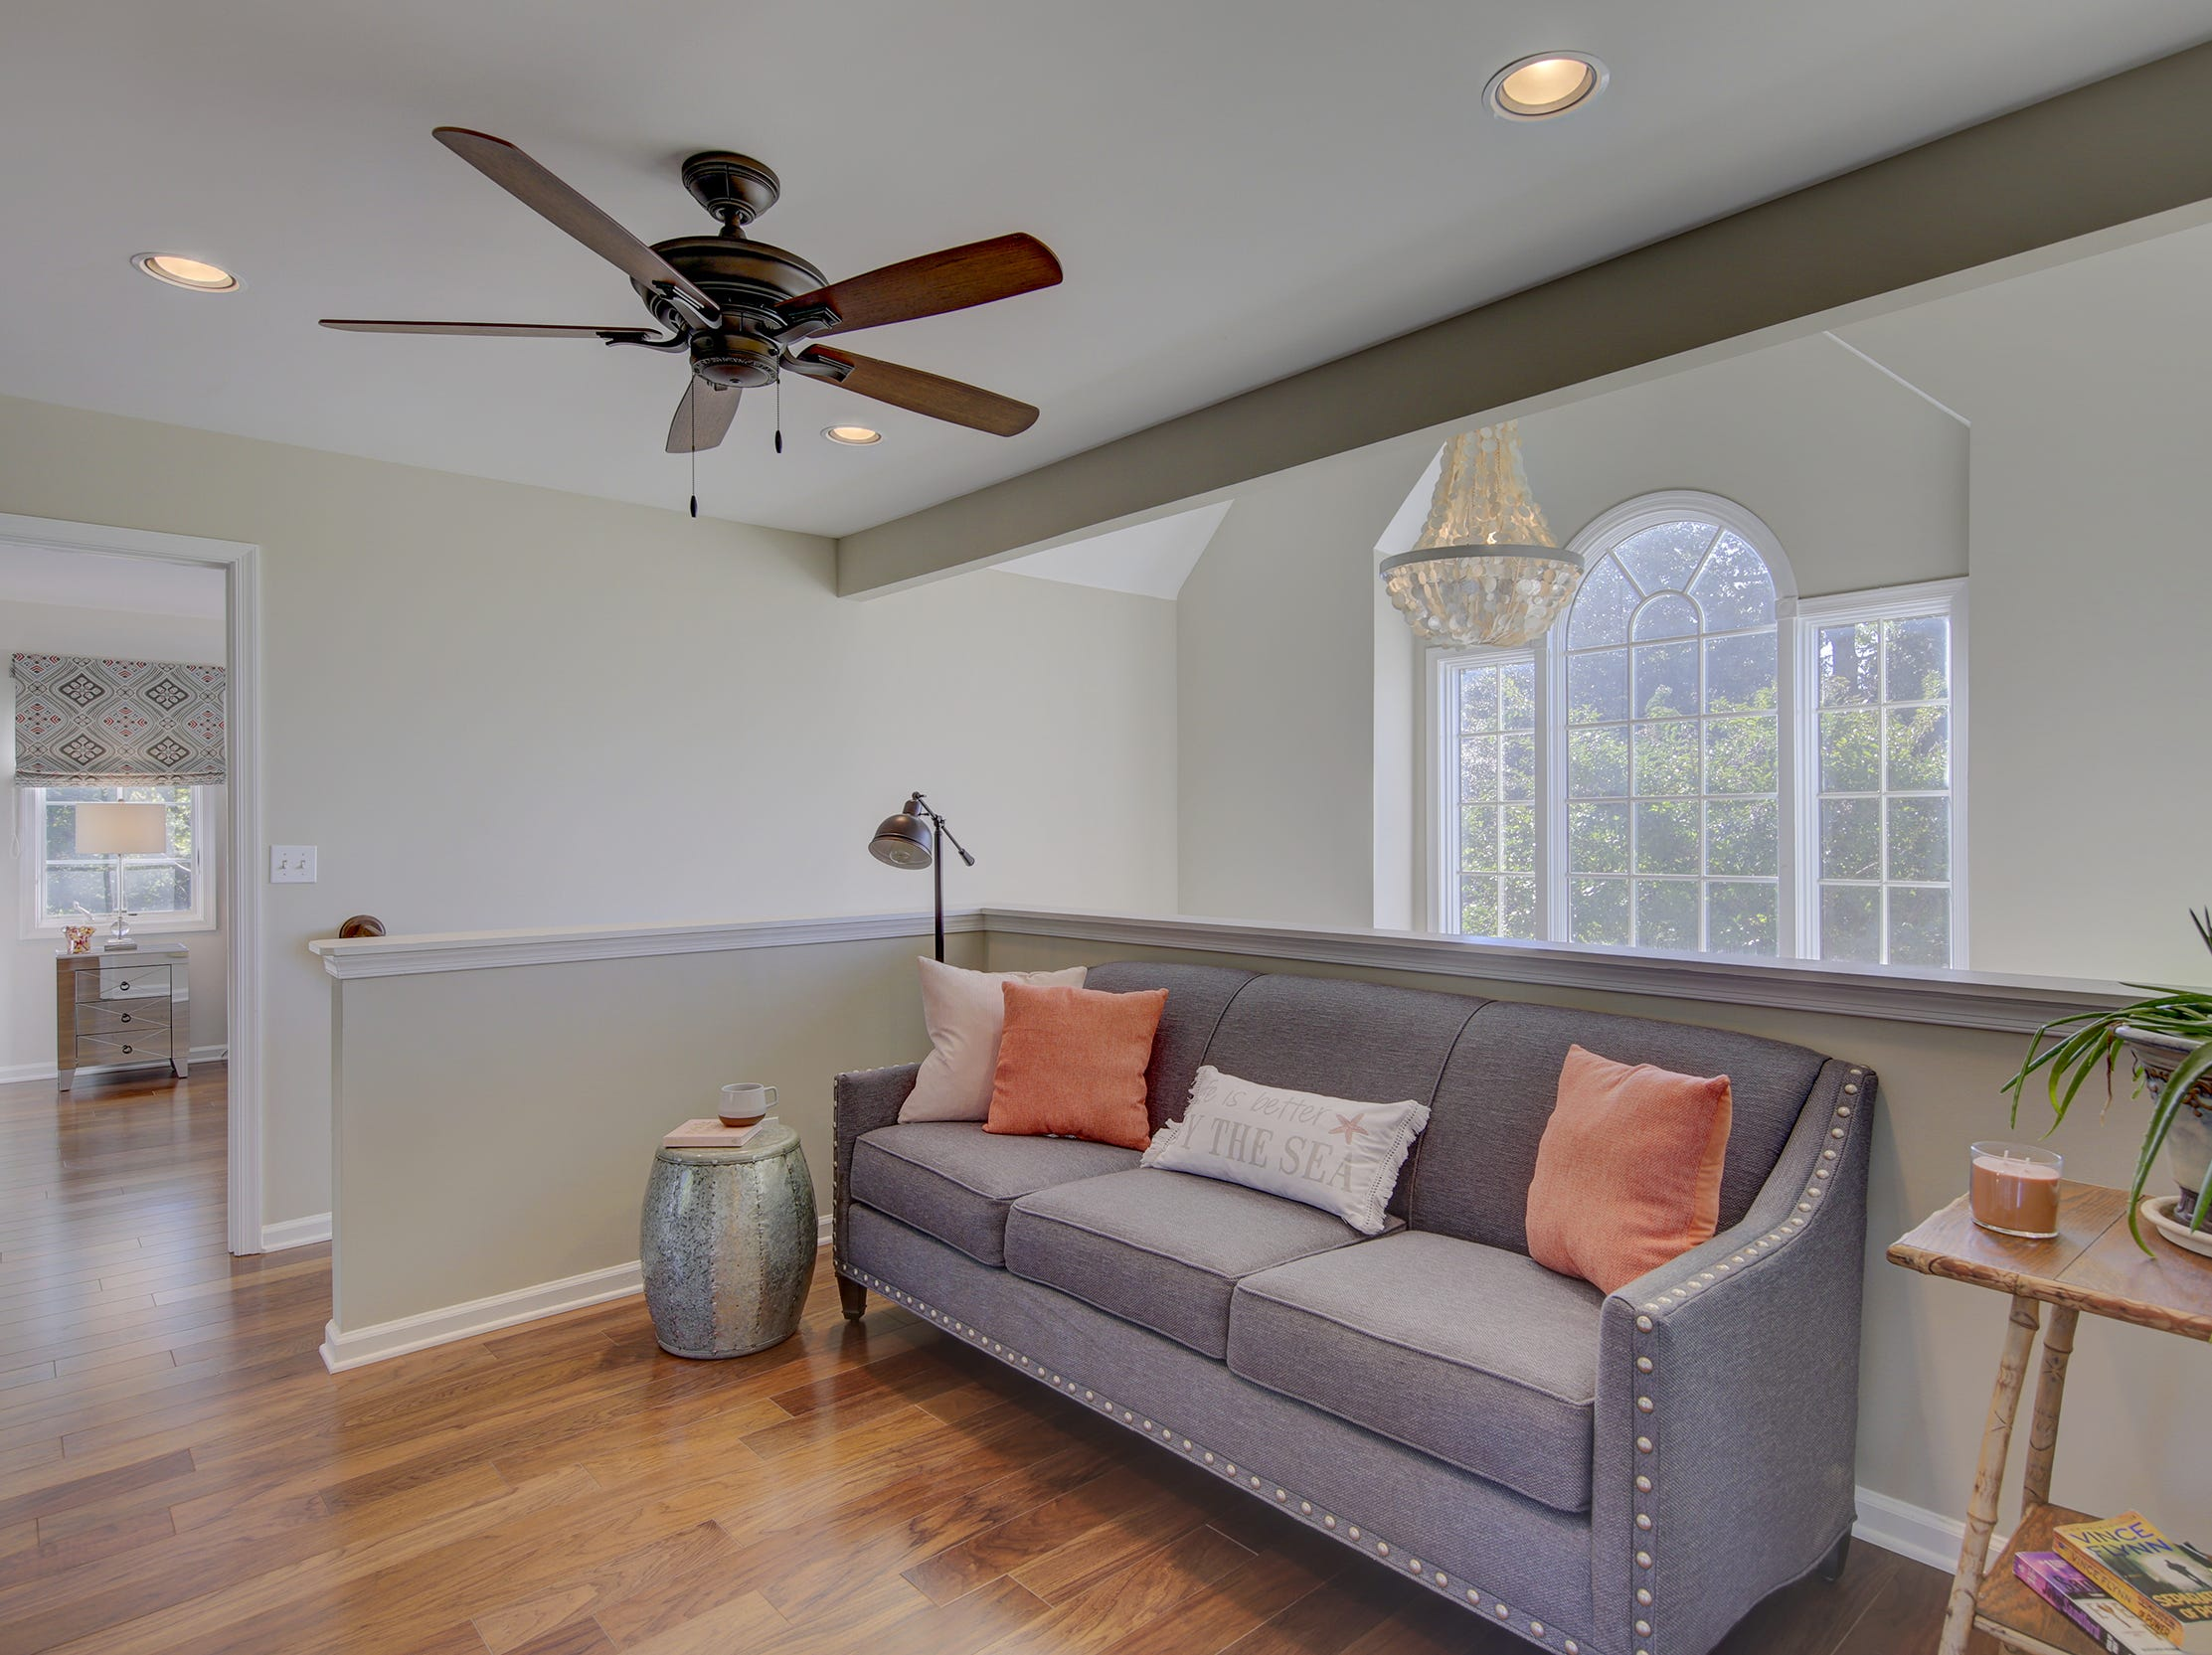 A second floor landing at 204 Lakeview Shores in Rehoboth Beach is large enough to accommodate a seating area.